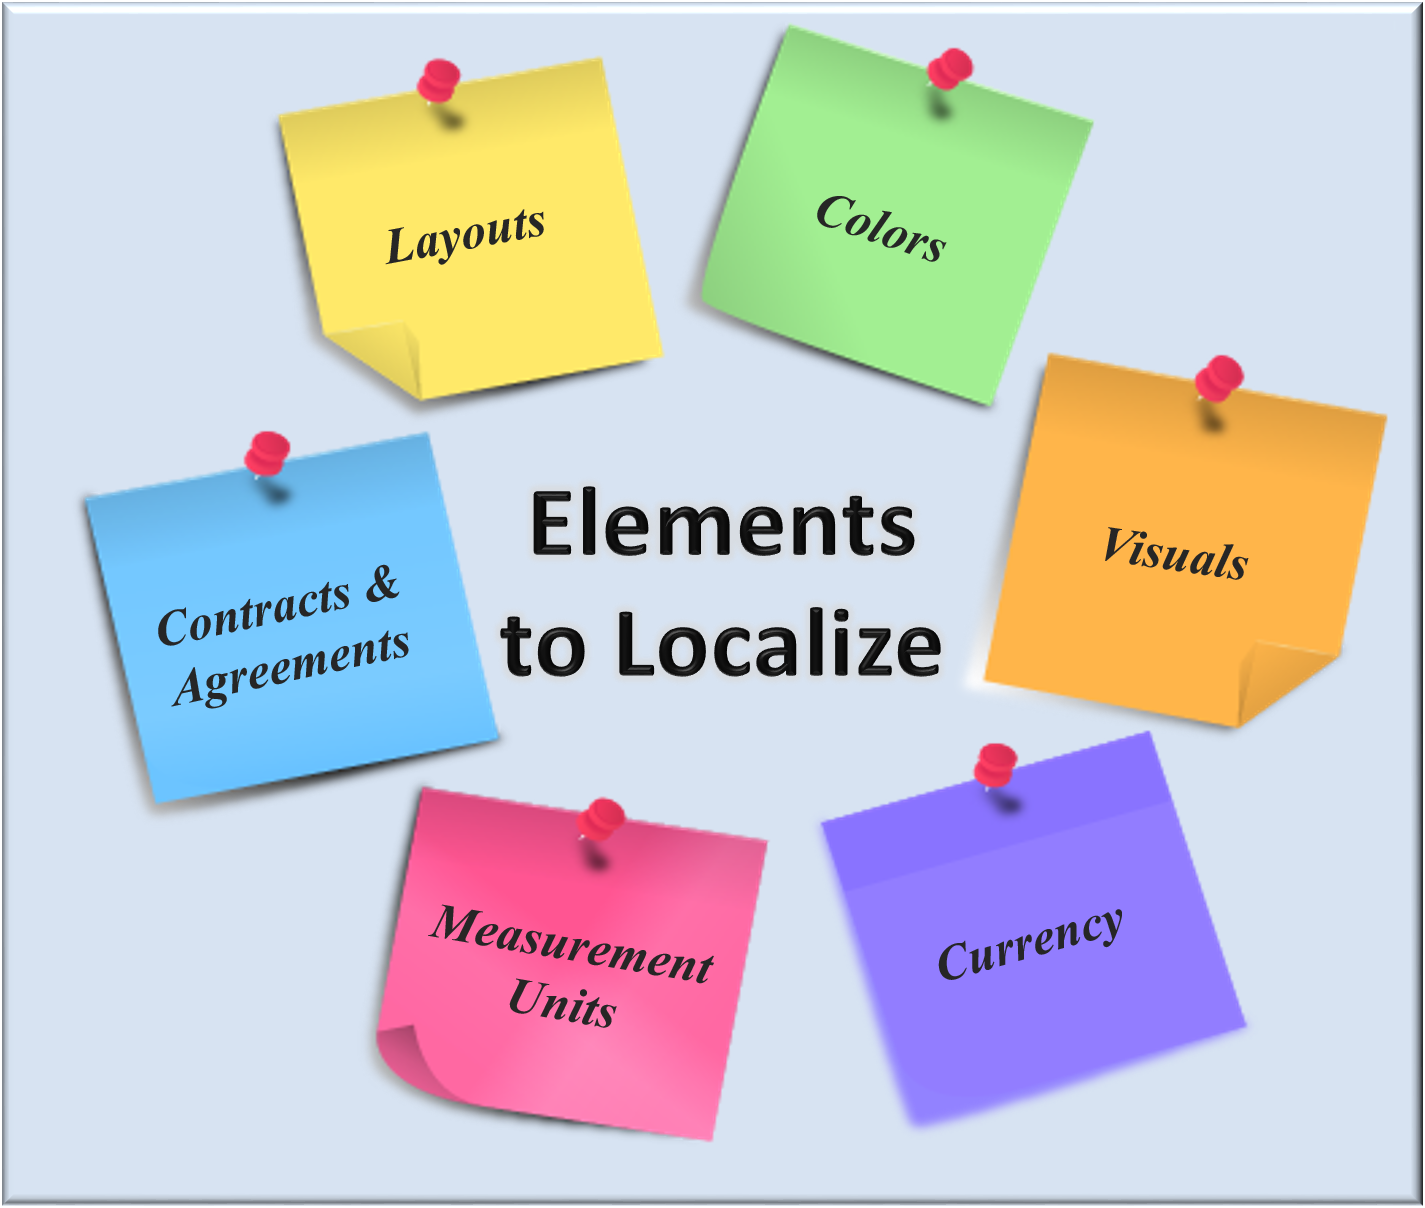 Elements to Localize